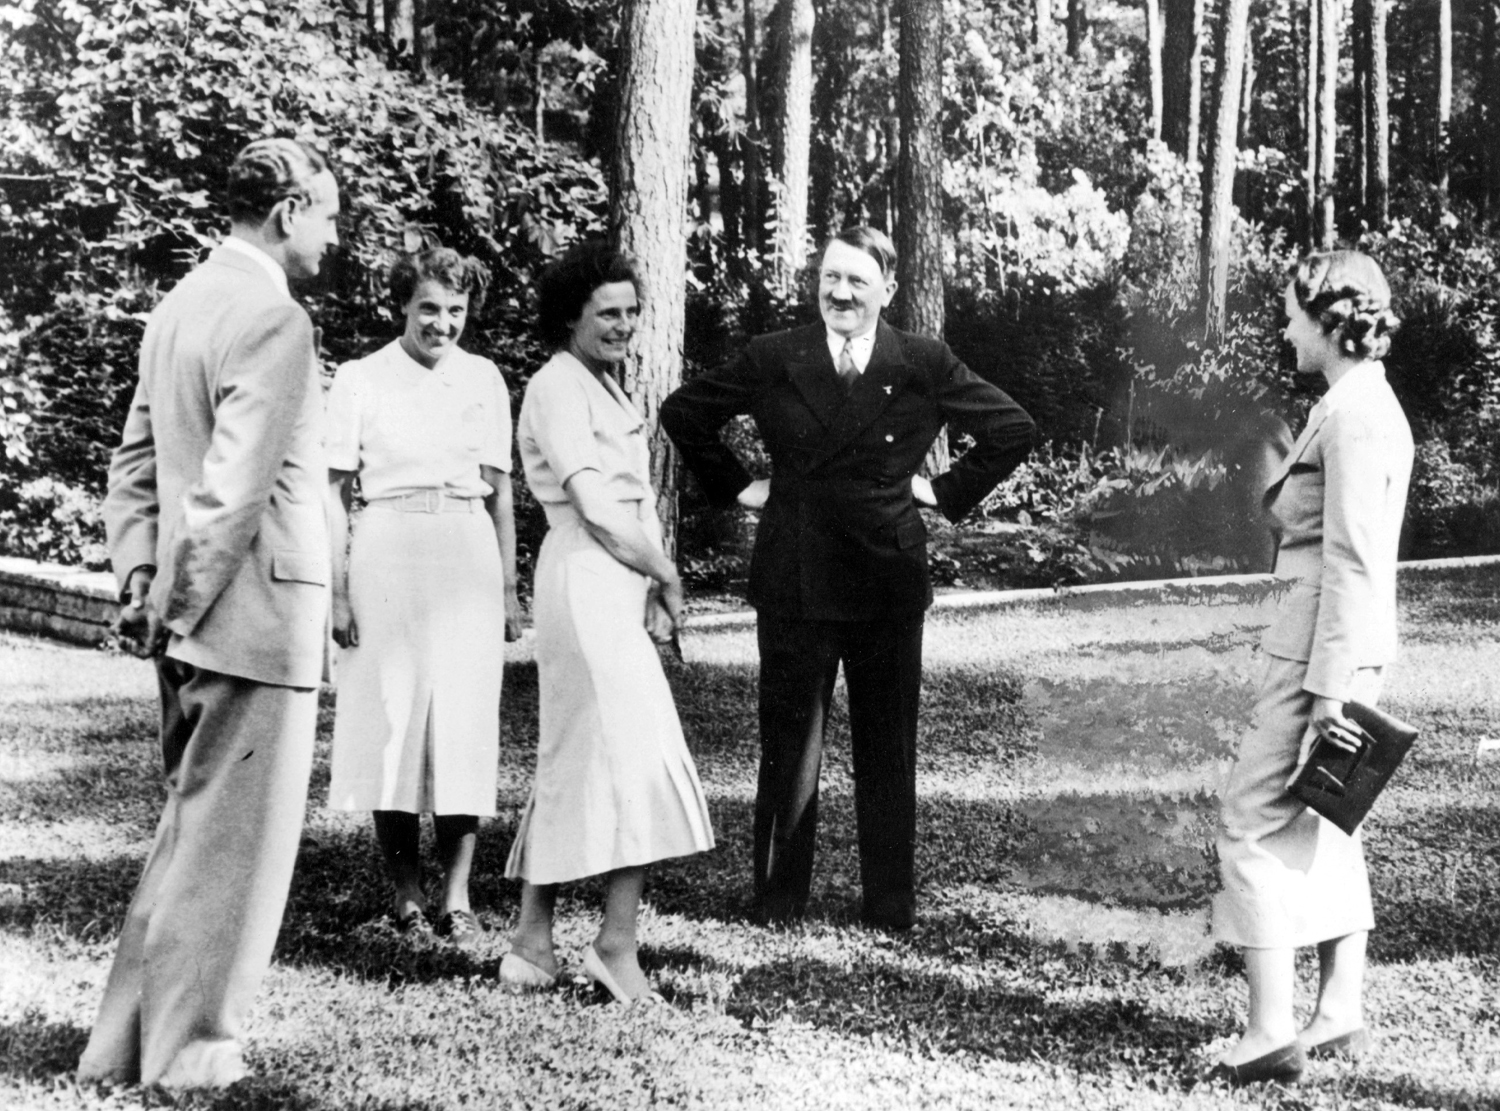 Hitler Meets with Leni Riefenstahl, 1937                               The Nazi filmmaker, center, is visited by the Führer in Berlin. They are joined by, at far left, her brother Heinz, and at far right, his wife Ilse. Note the ghostly outline next to Ilse in the middle right of the frame.